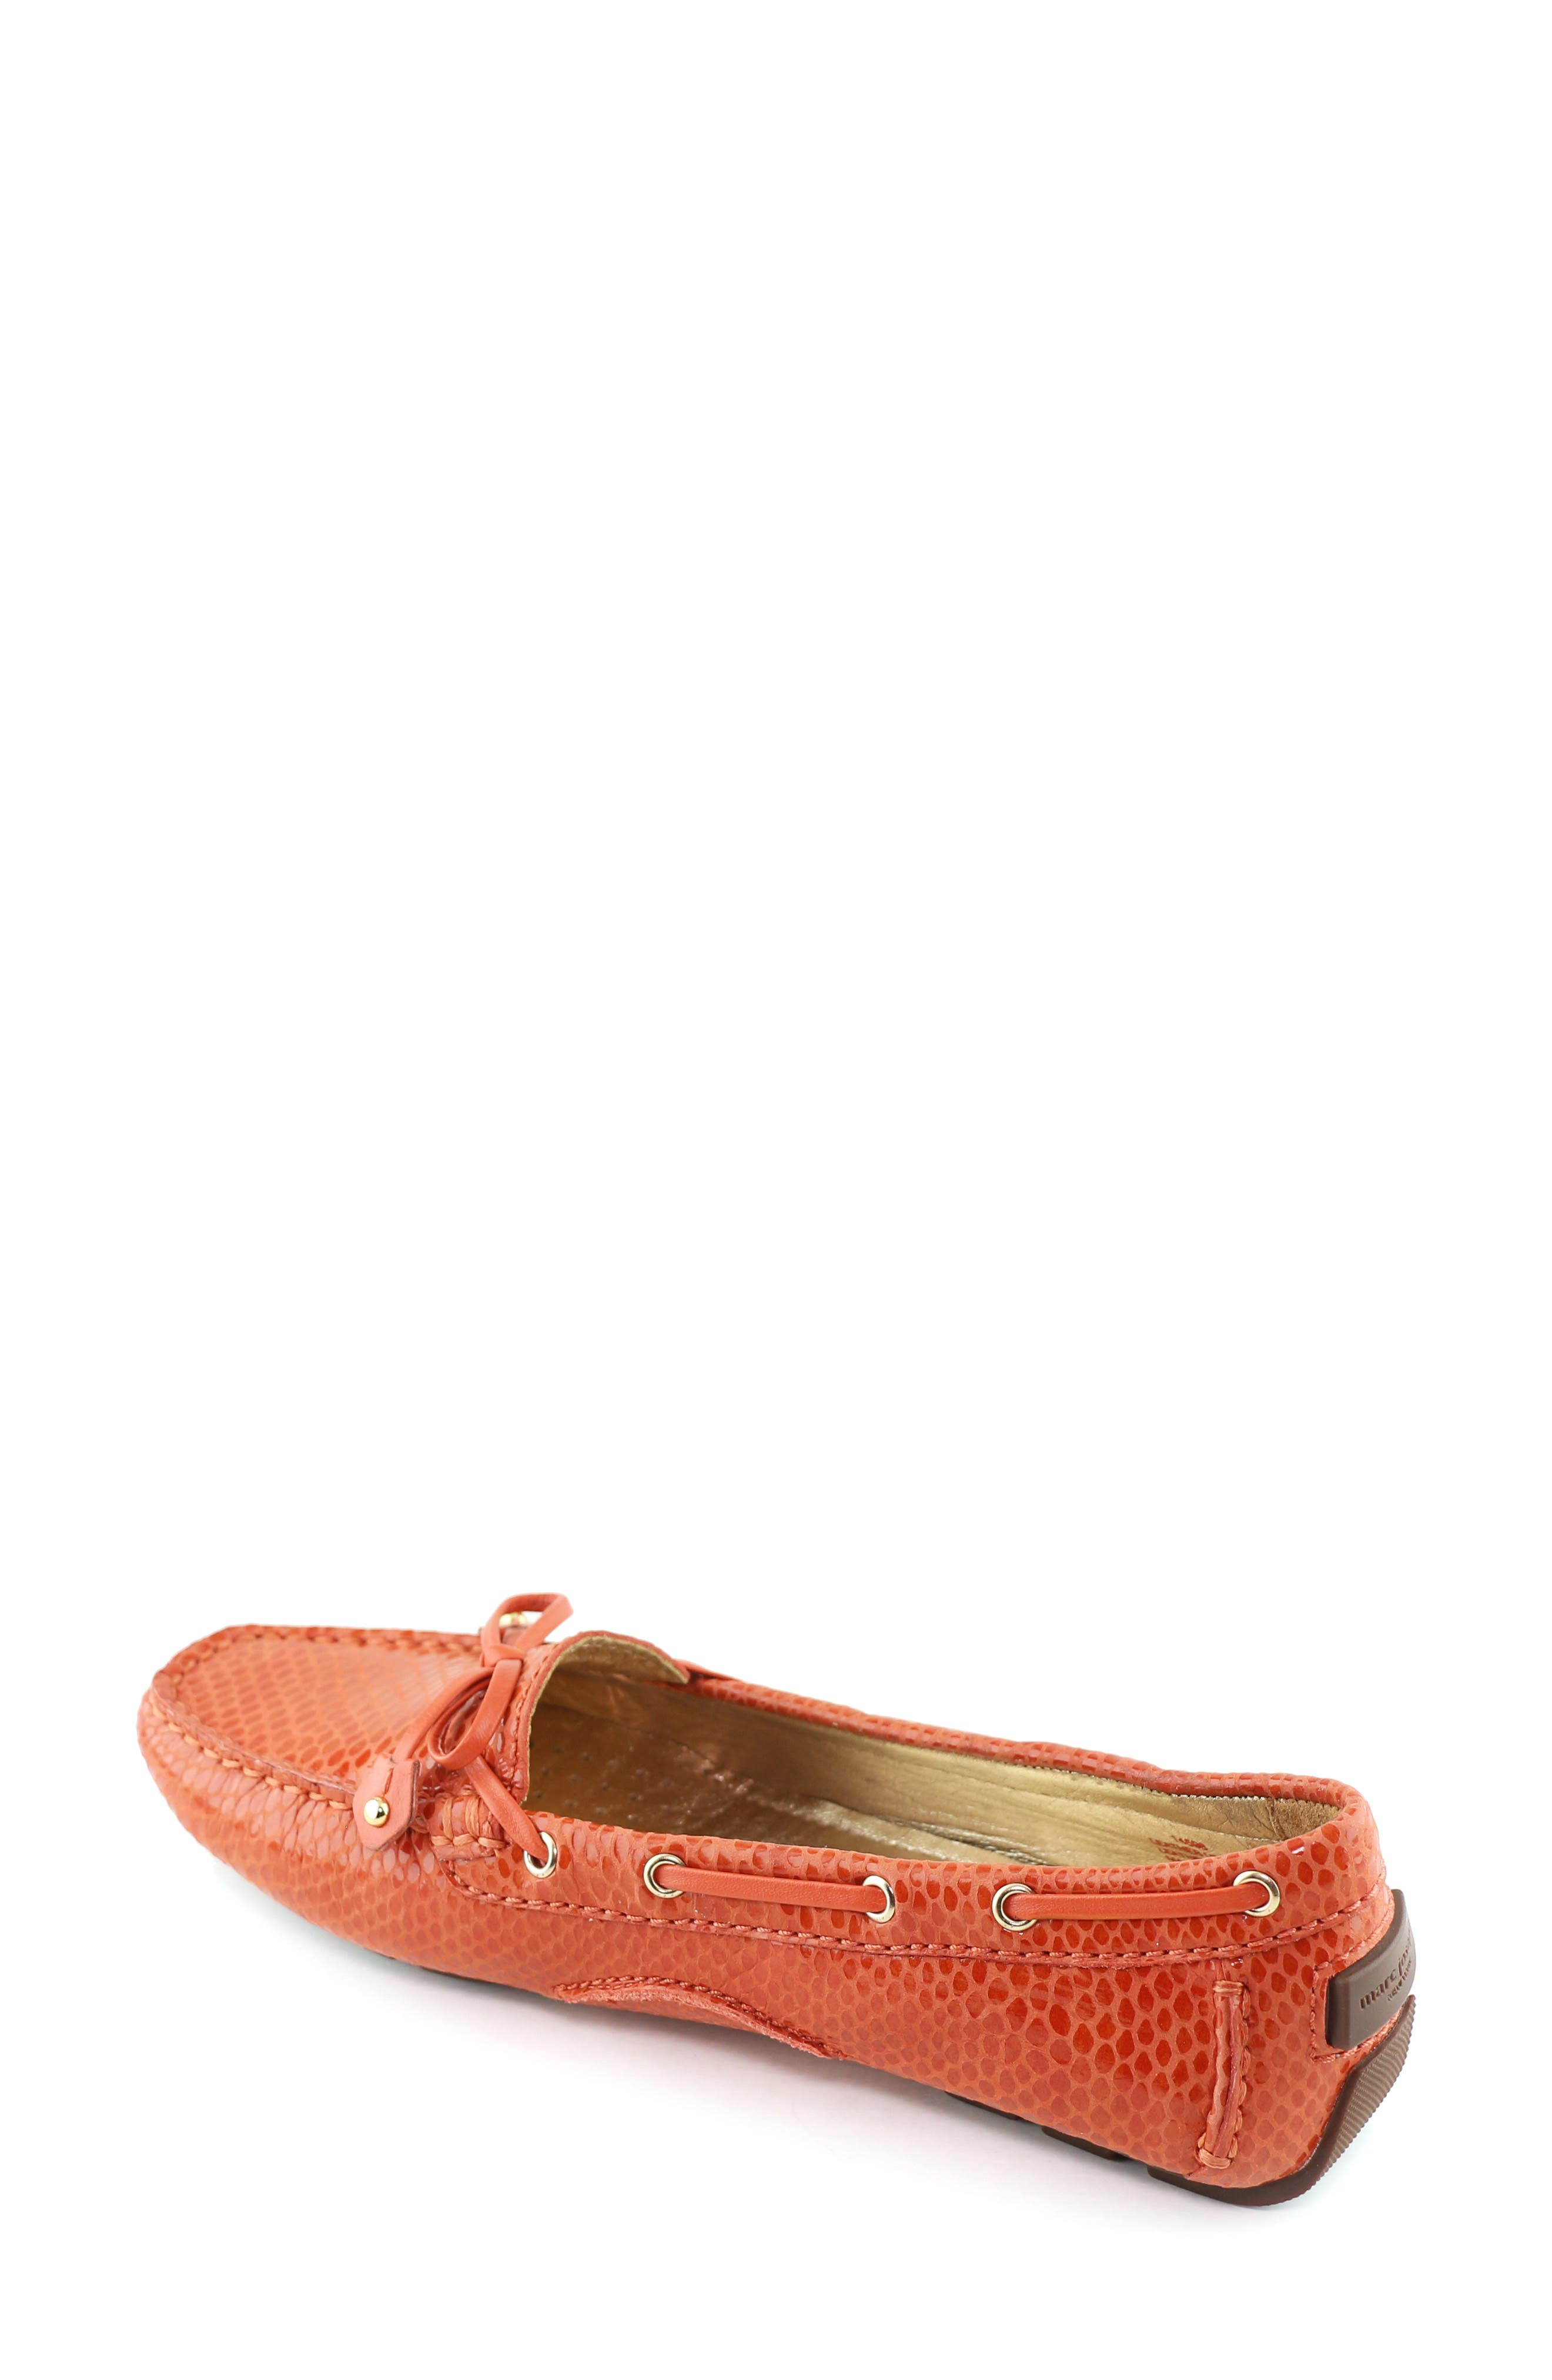 MARC JOSEPH NEW YORK, 'Cypress Hill' Loafer, Alternate thumbnail 2, color, CORAL SNAKE PRINT LEATHER